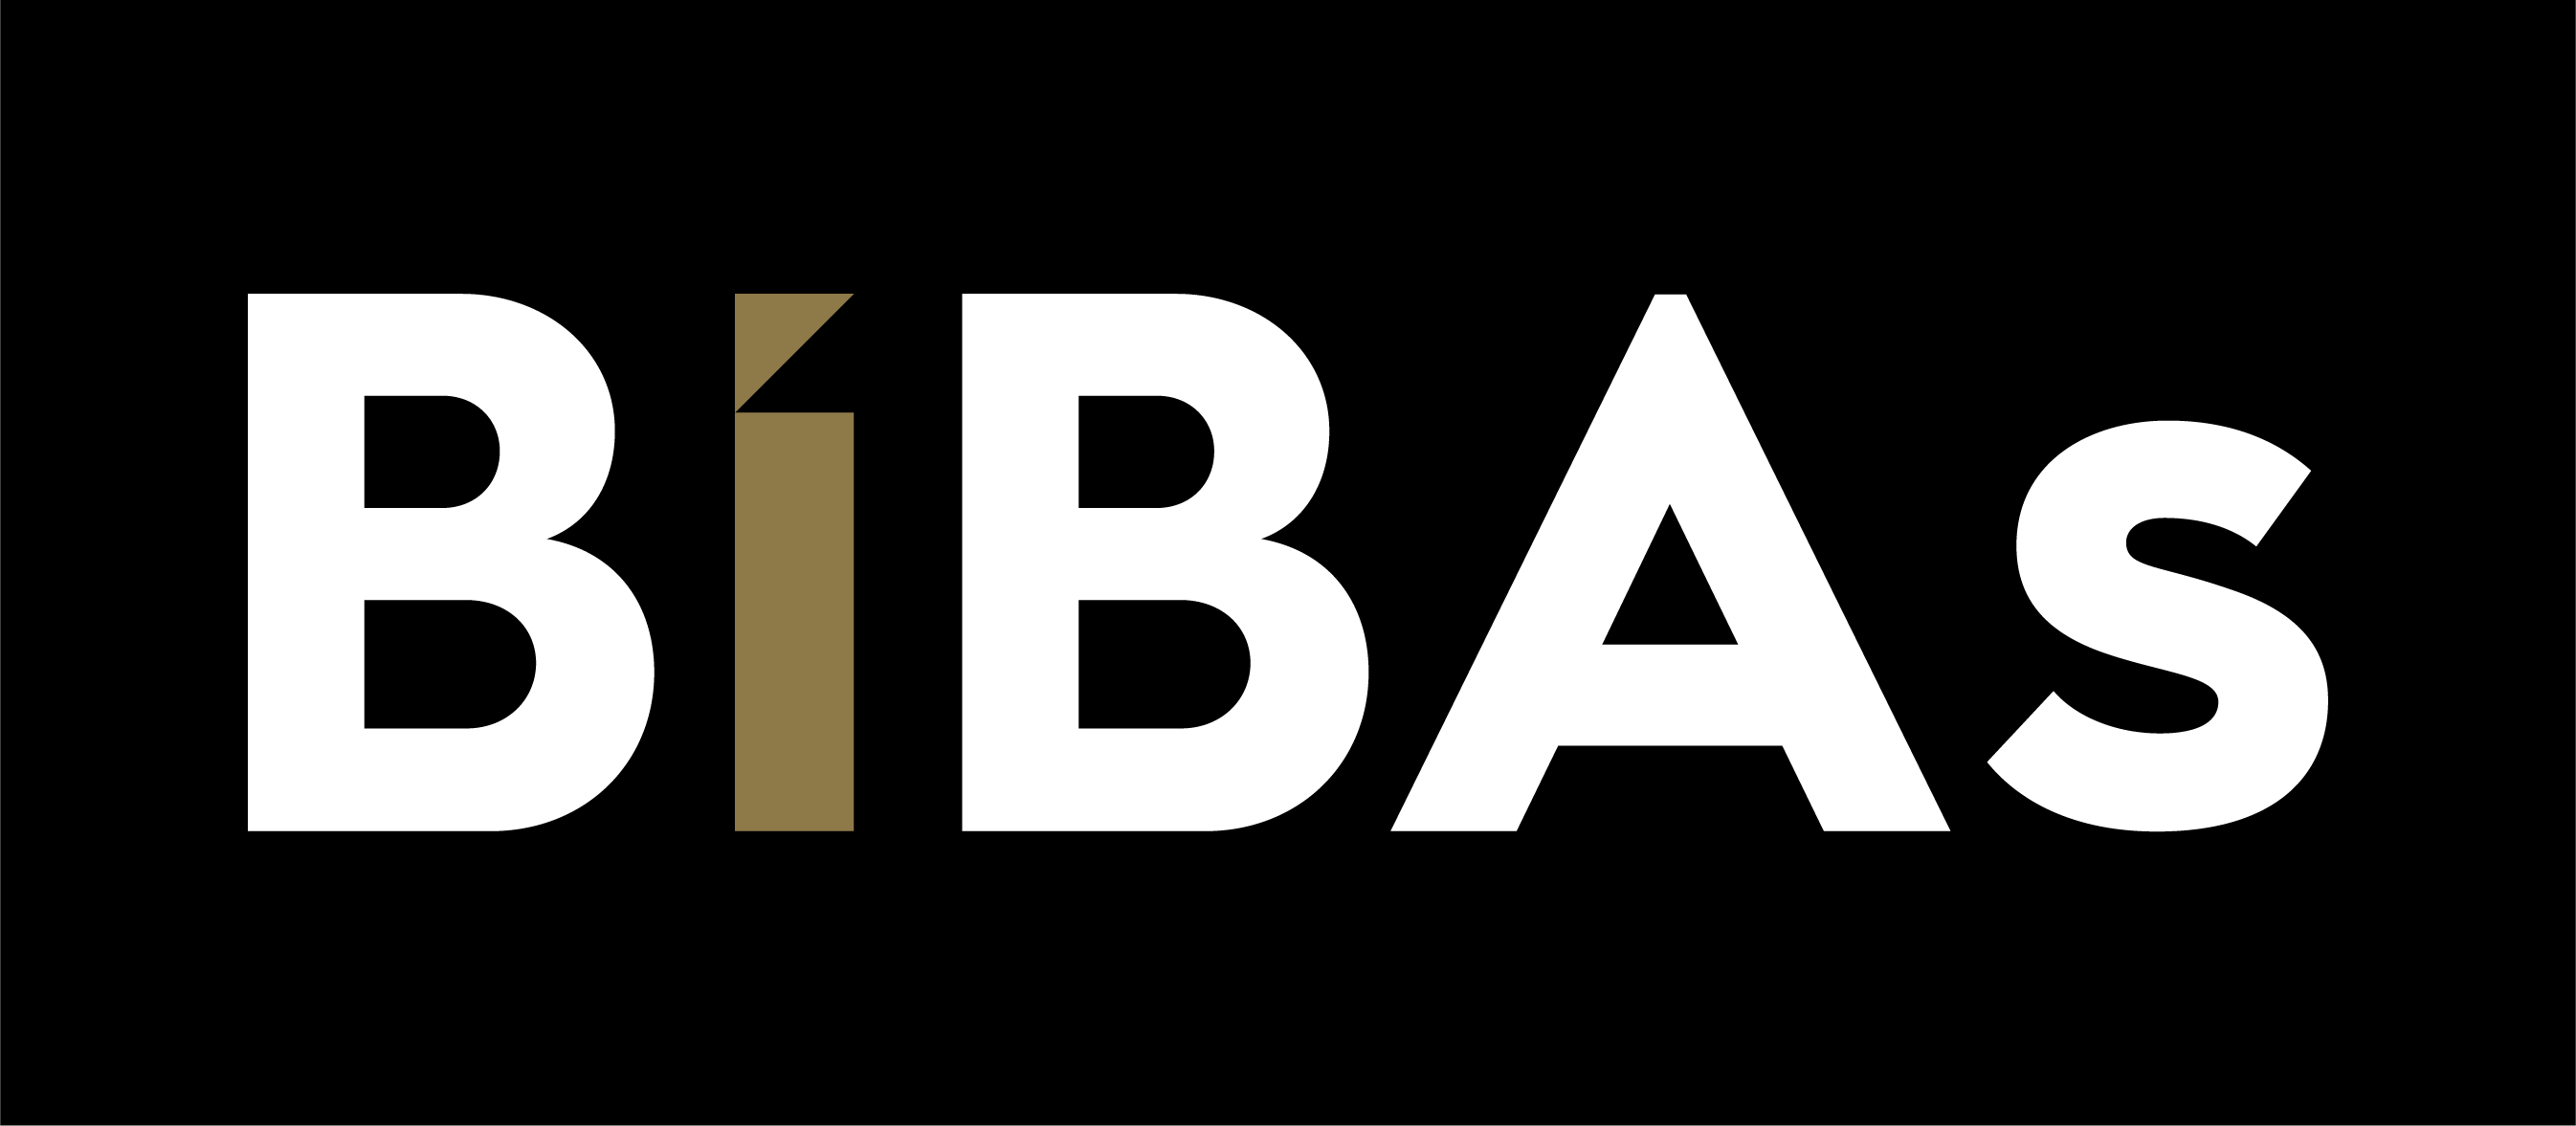 Elektec shortlisted for a BIBAs award - Construction Business of the Year